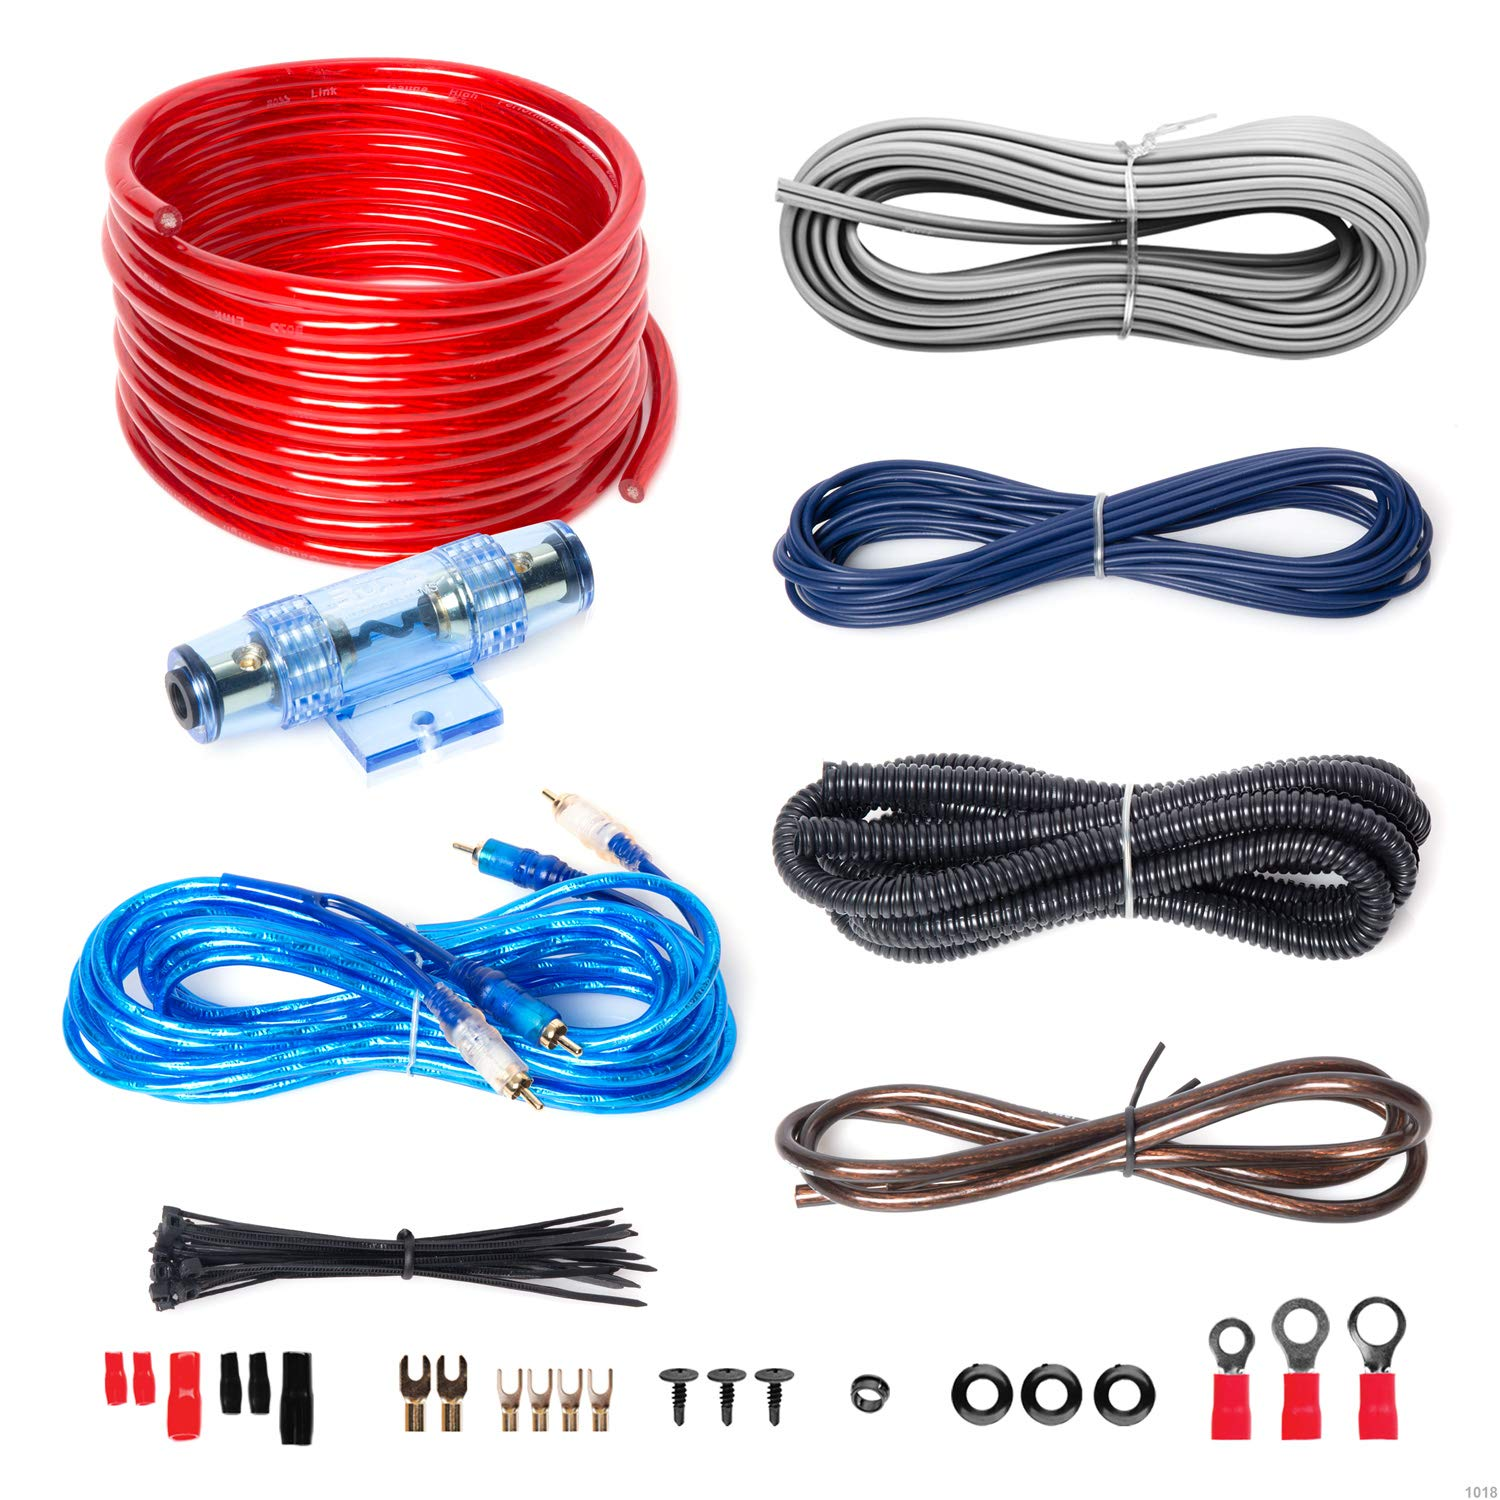 best amp for subwoofer amazon comboss audio kit2 8 gauge amplifier installation wiring kit \u2013 a car amplifier wiring kit helps you make connections and brings power to your radio, subwoofers